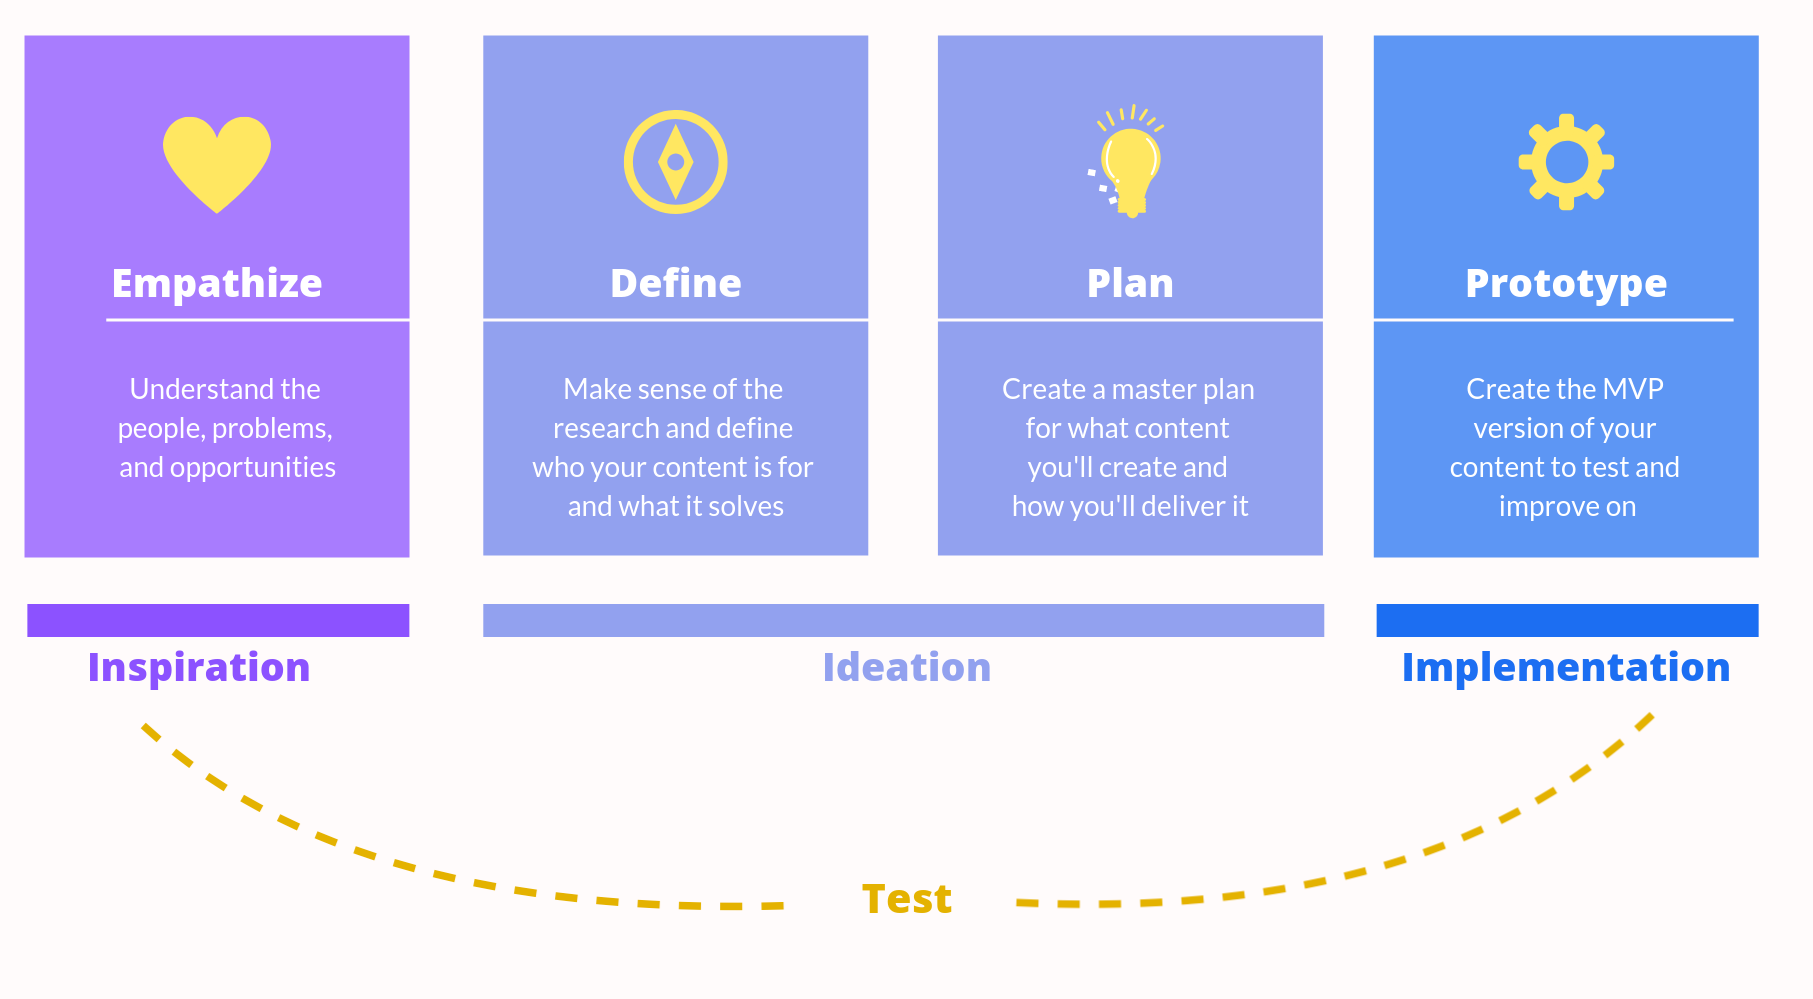 a model of how to center human ux design